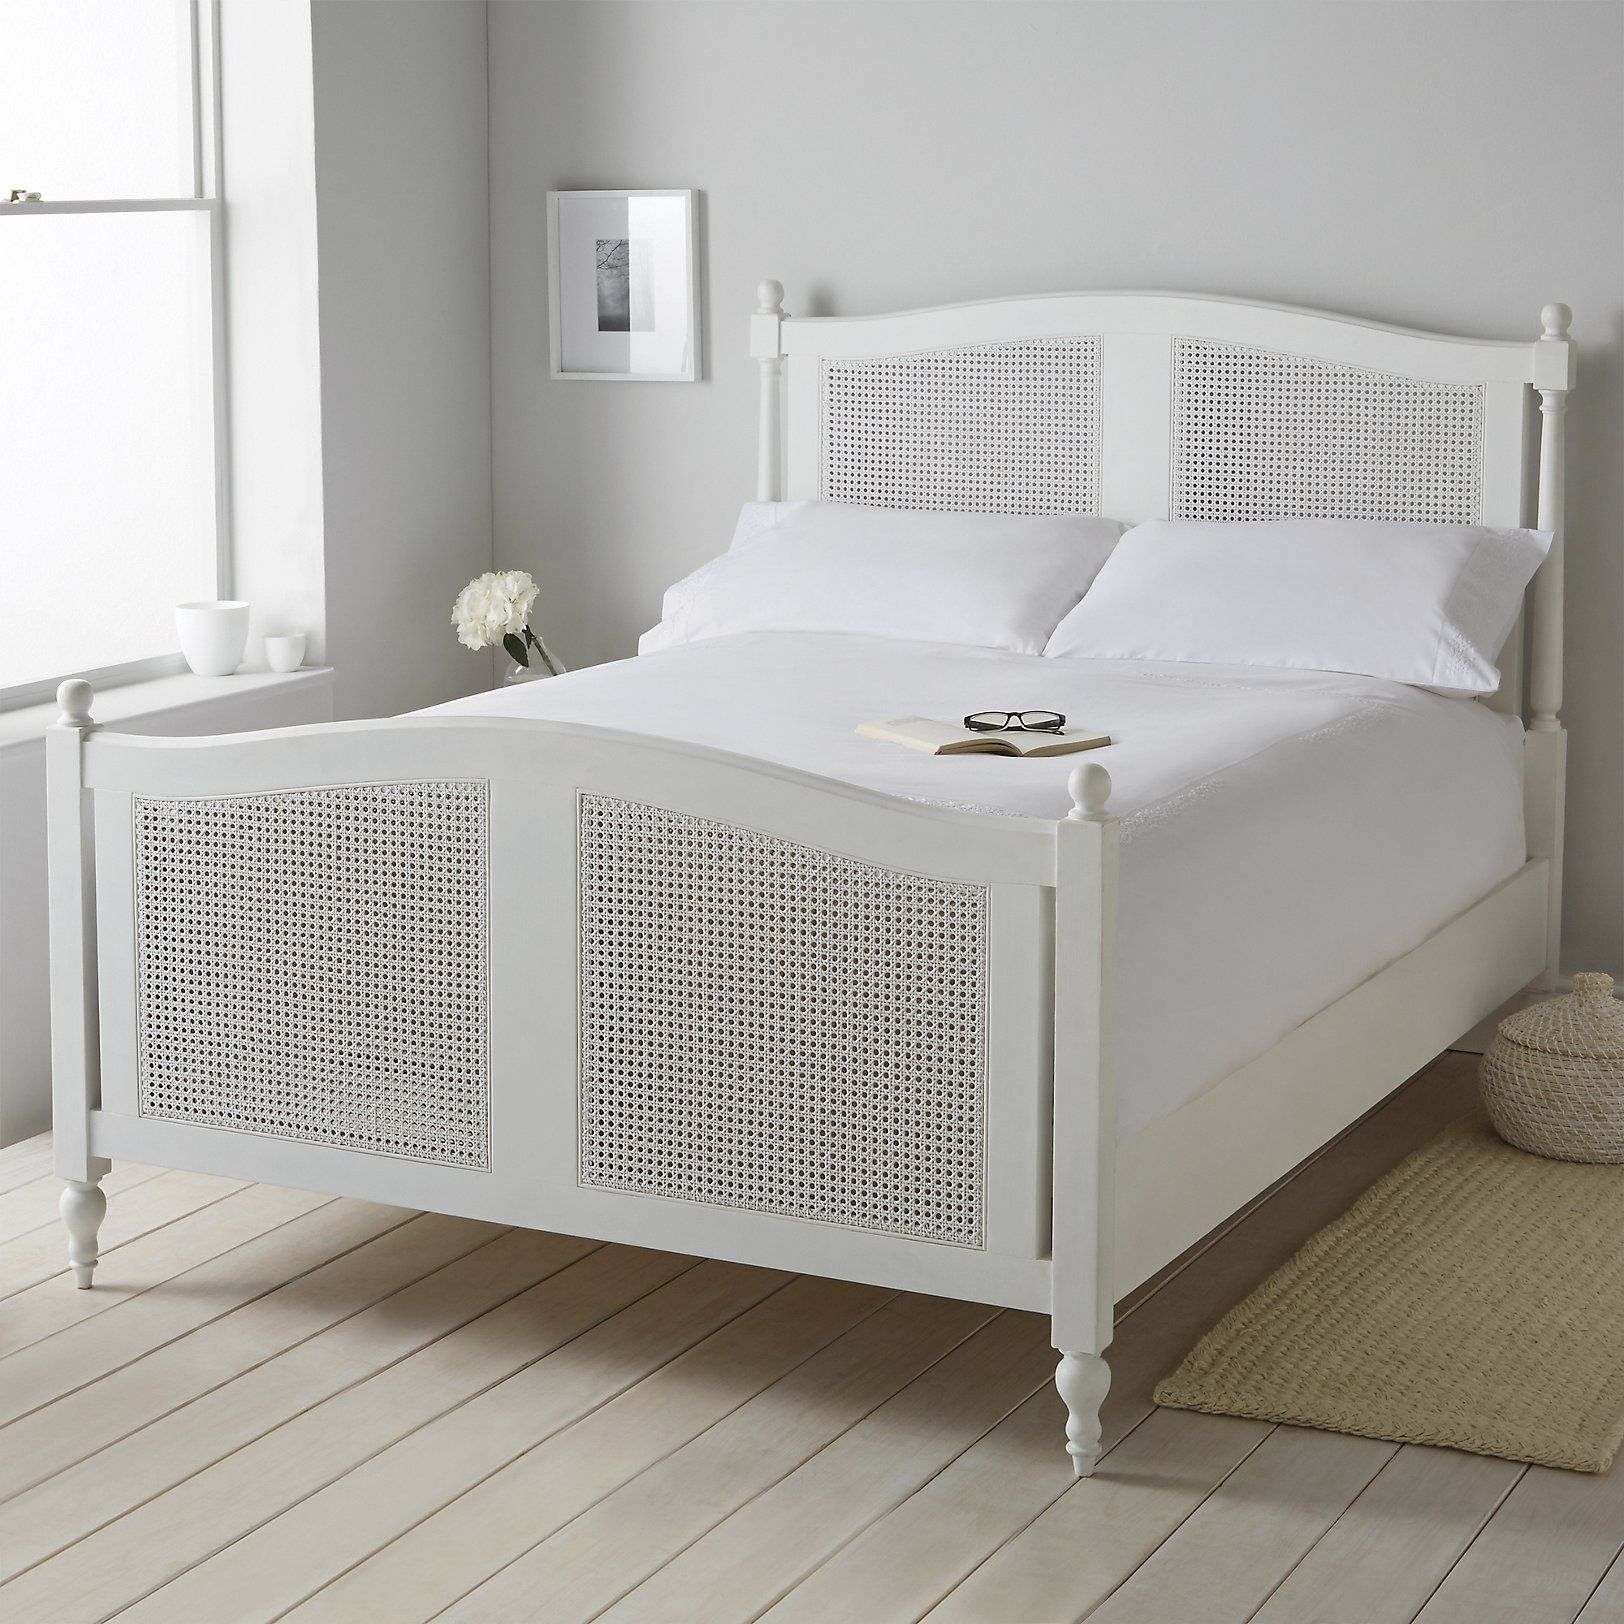 provence bed stocked made to order furniture furniture home